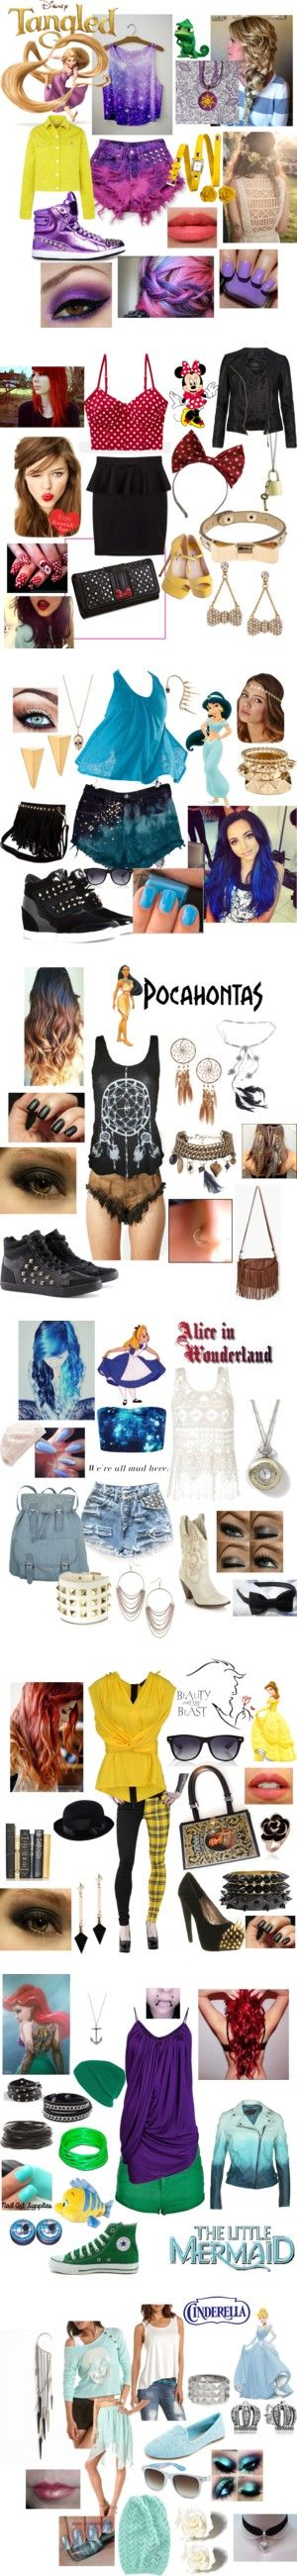 """Punk Rock Disney"" by casey-carpenter on Polyvore"